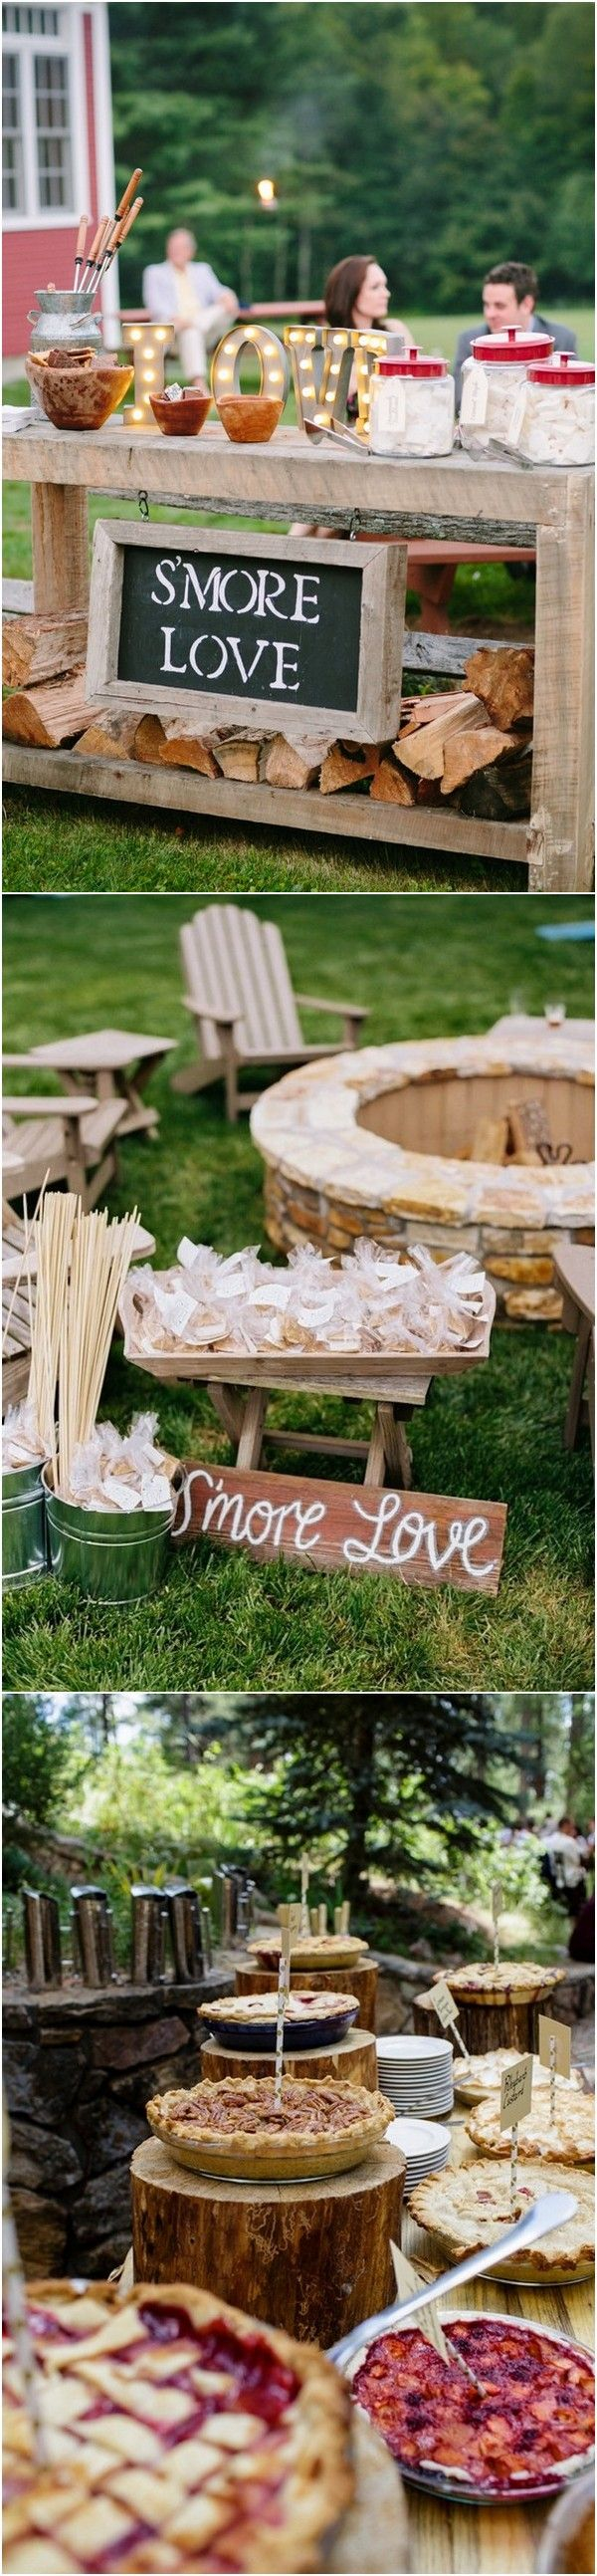 best 25 country store display ideas on pinterest booth displays